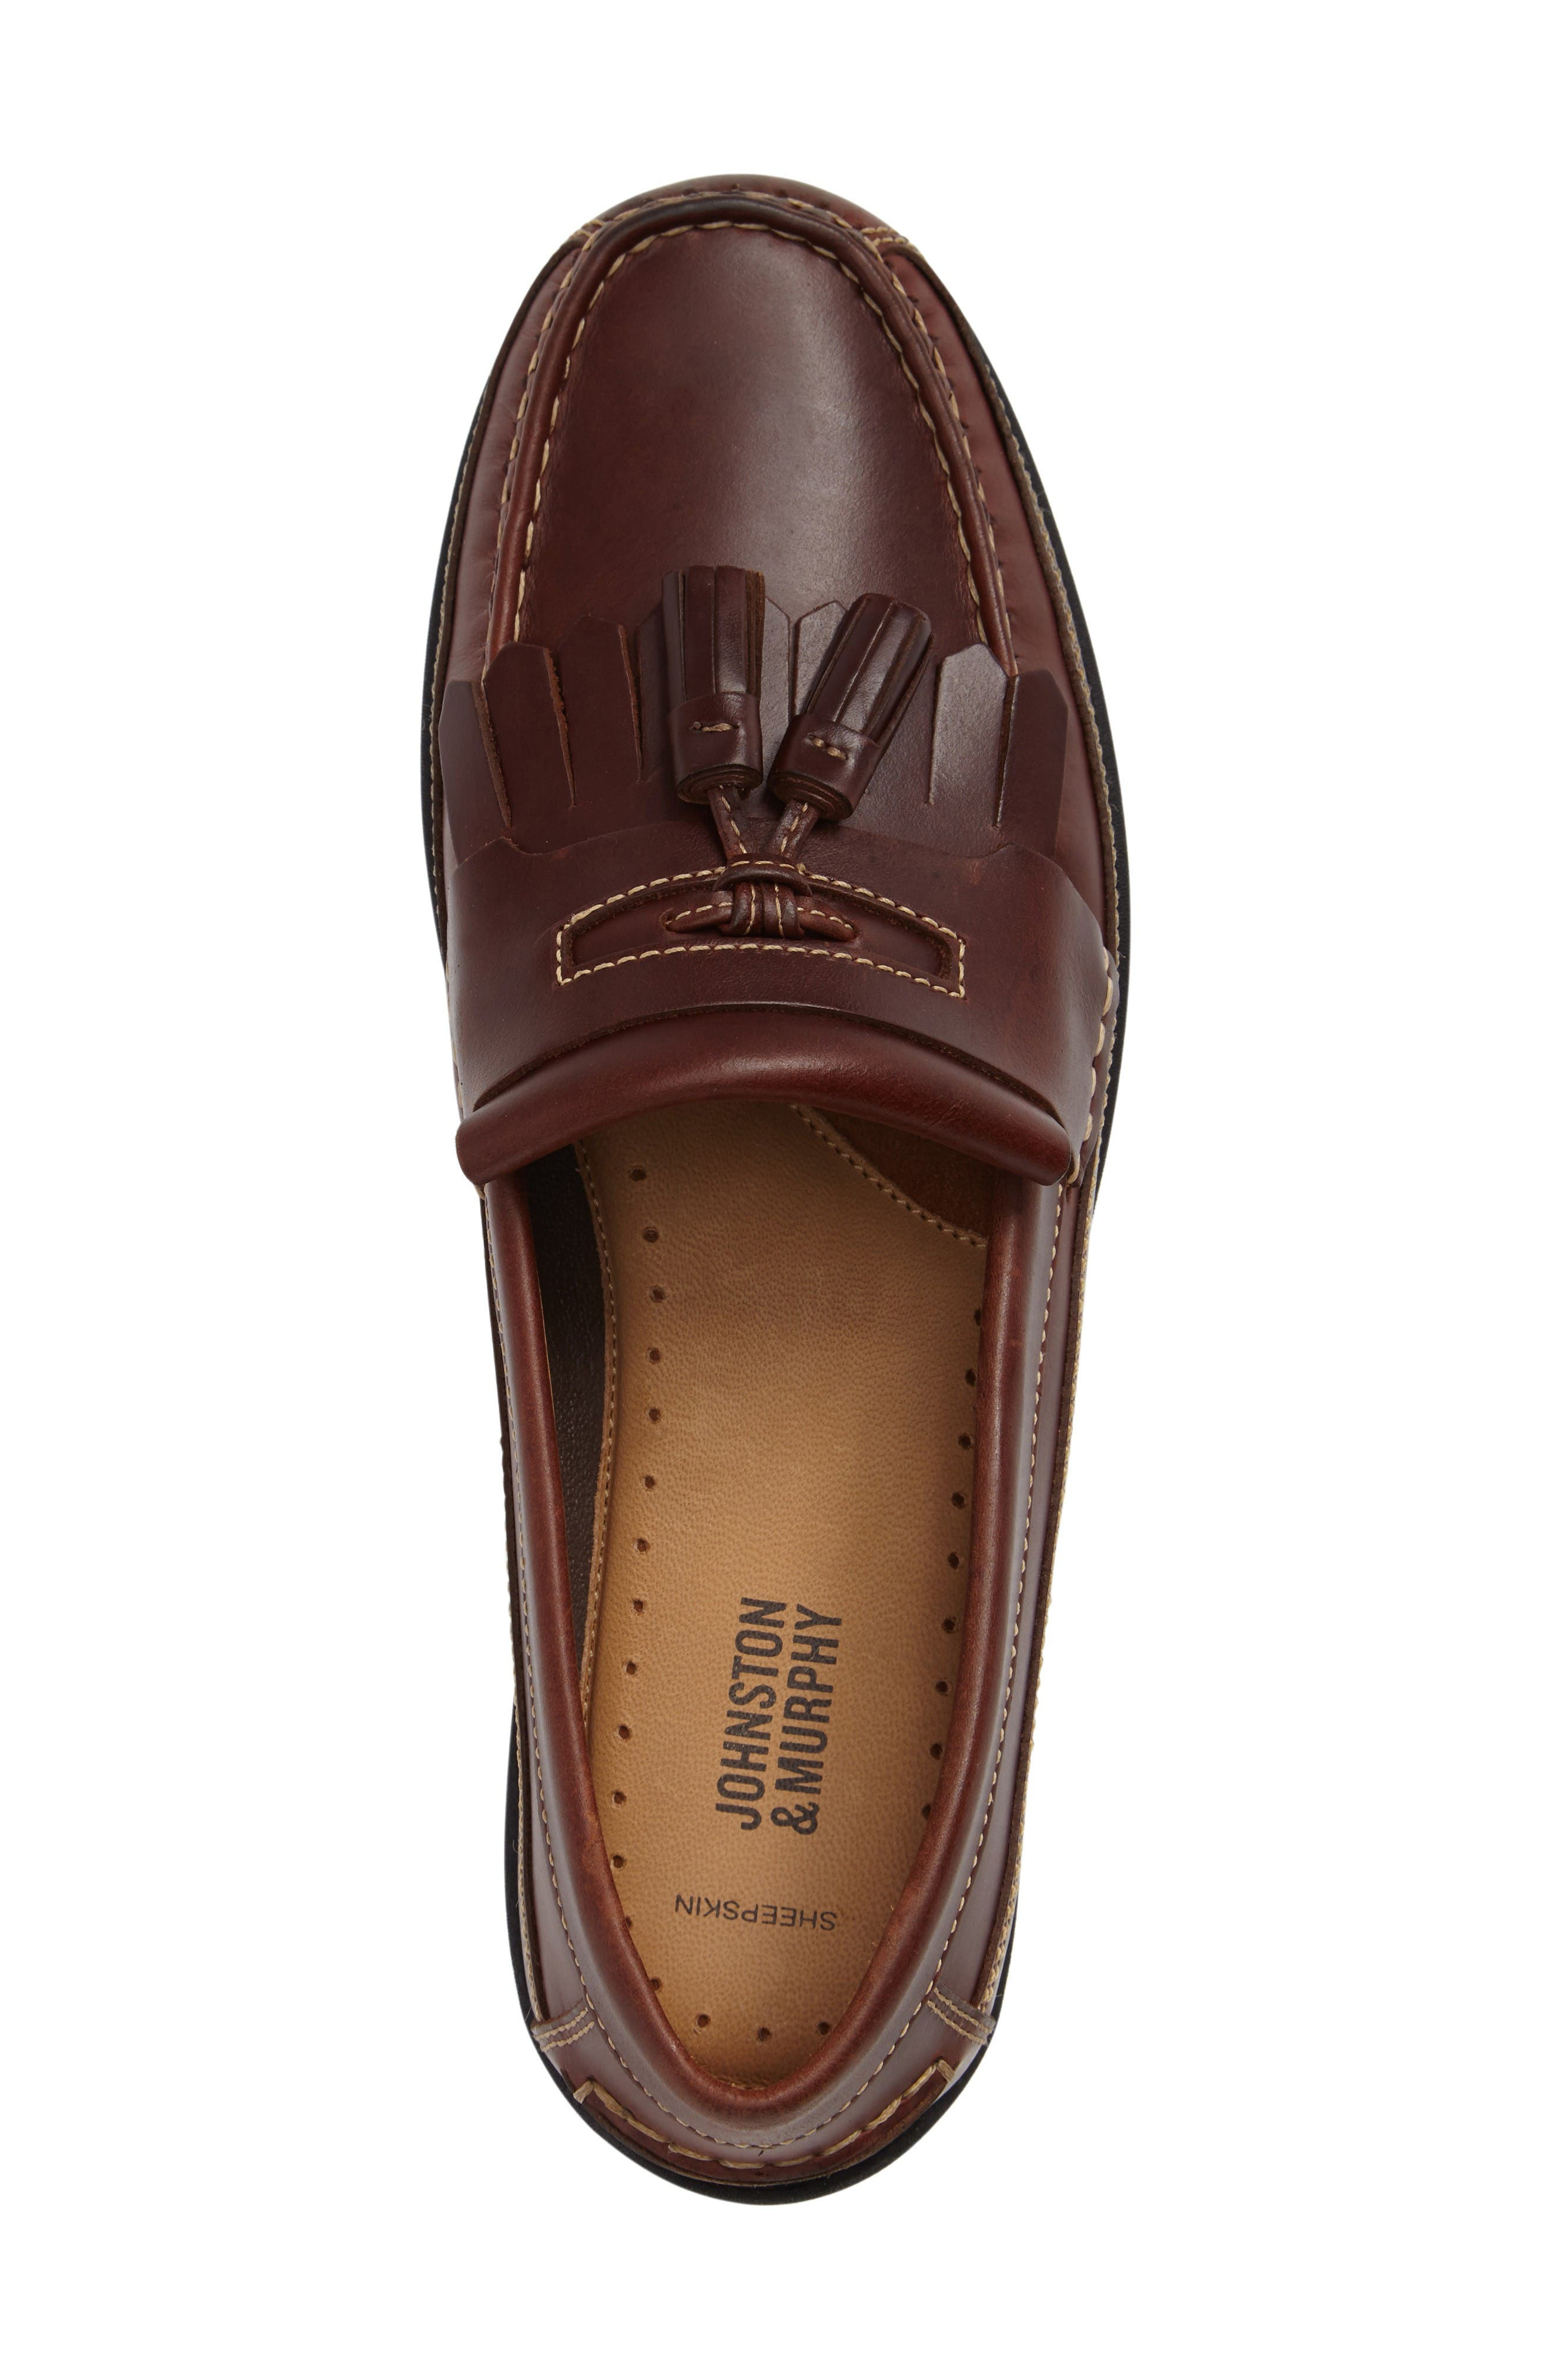 Fowler Kiltie Tassel Loafer,                             Alternate thumbnail 3, color,                             Mahogany Leather